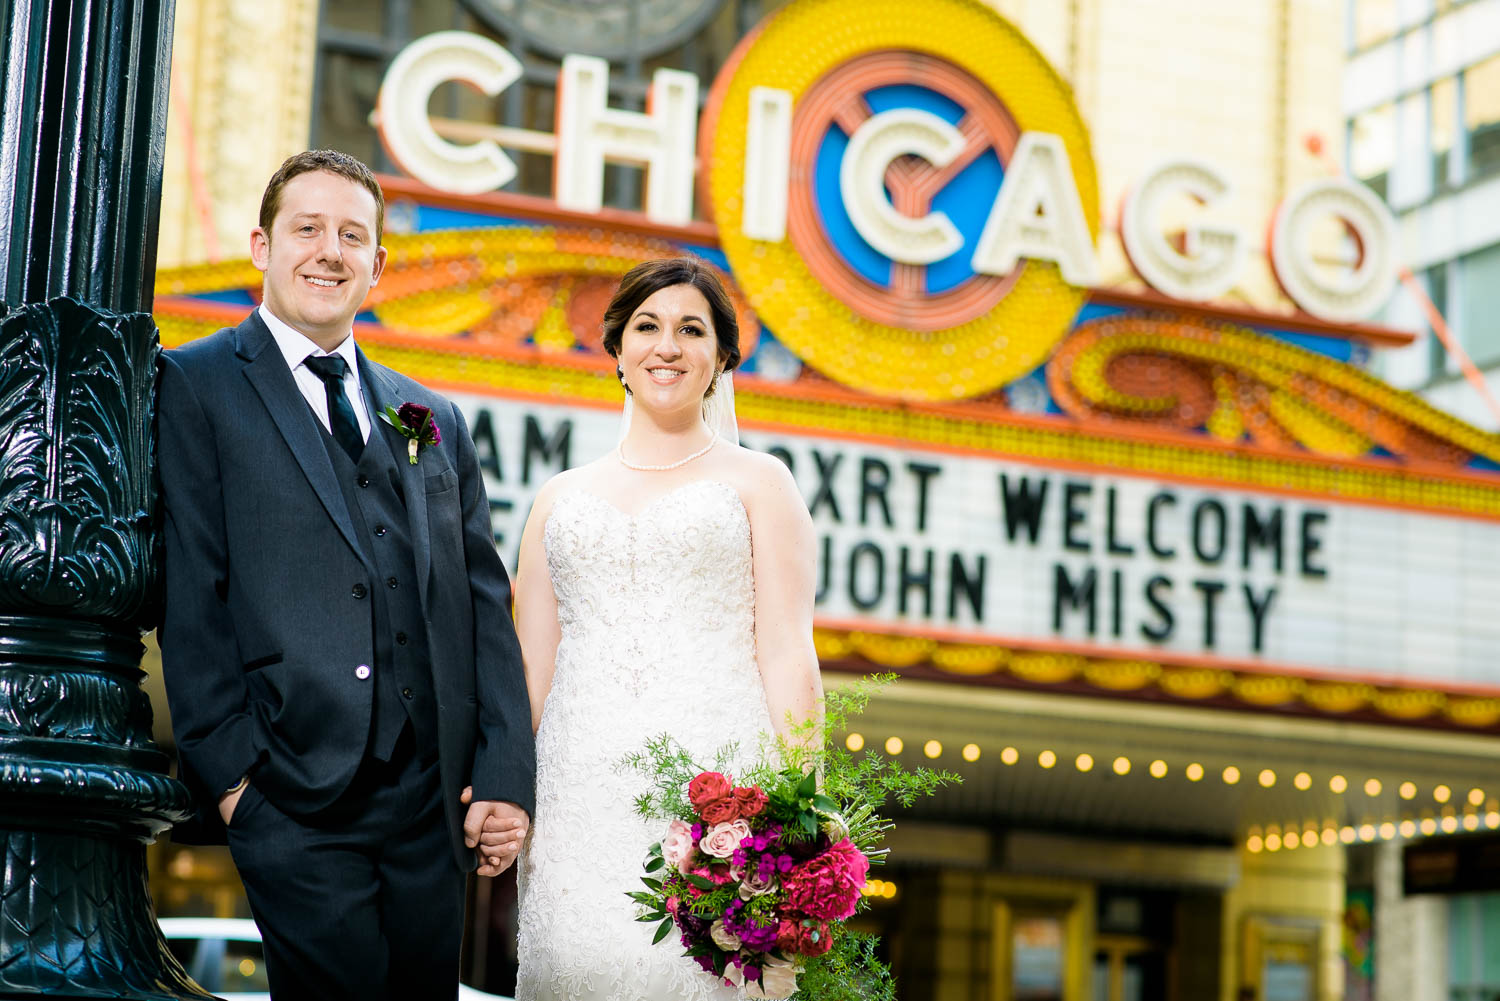 Chicago wedding portrait outside the Chicago Theater.